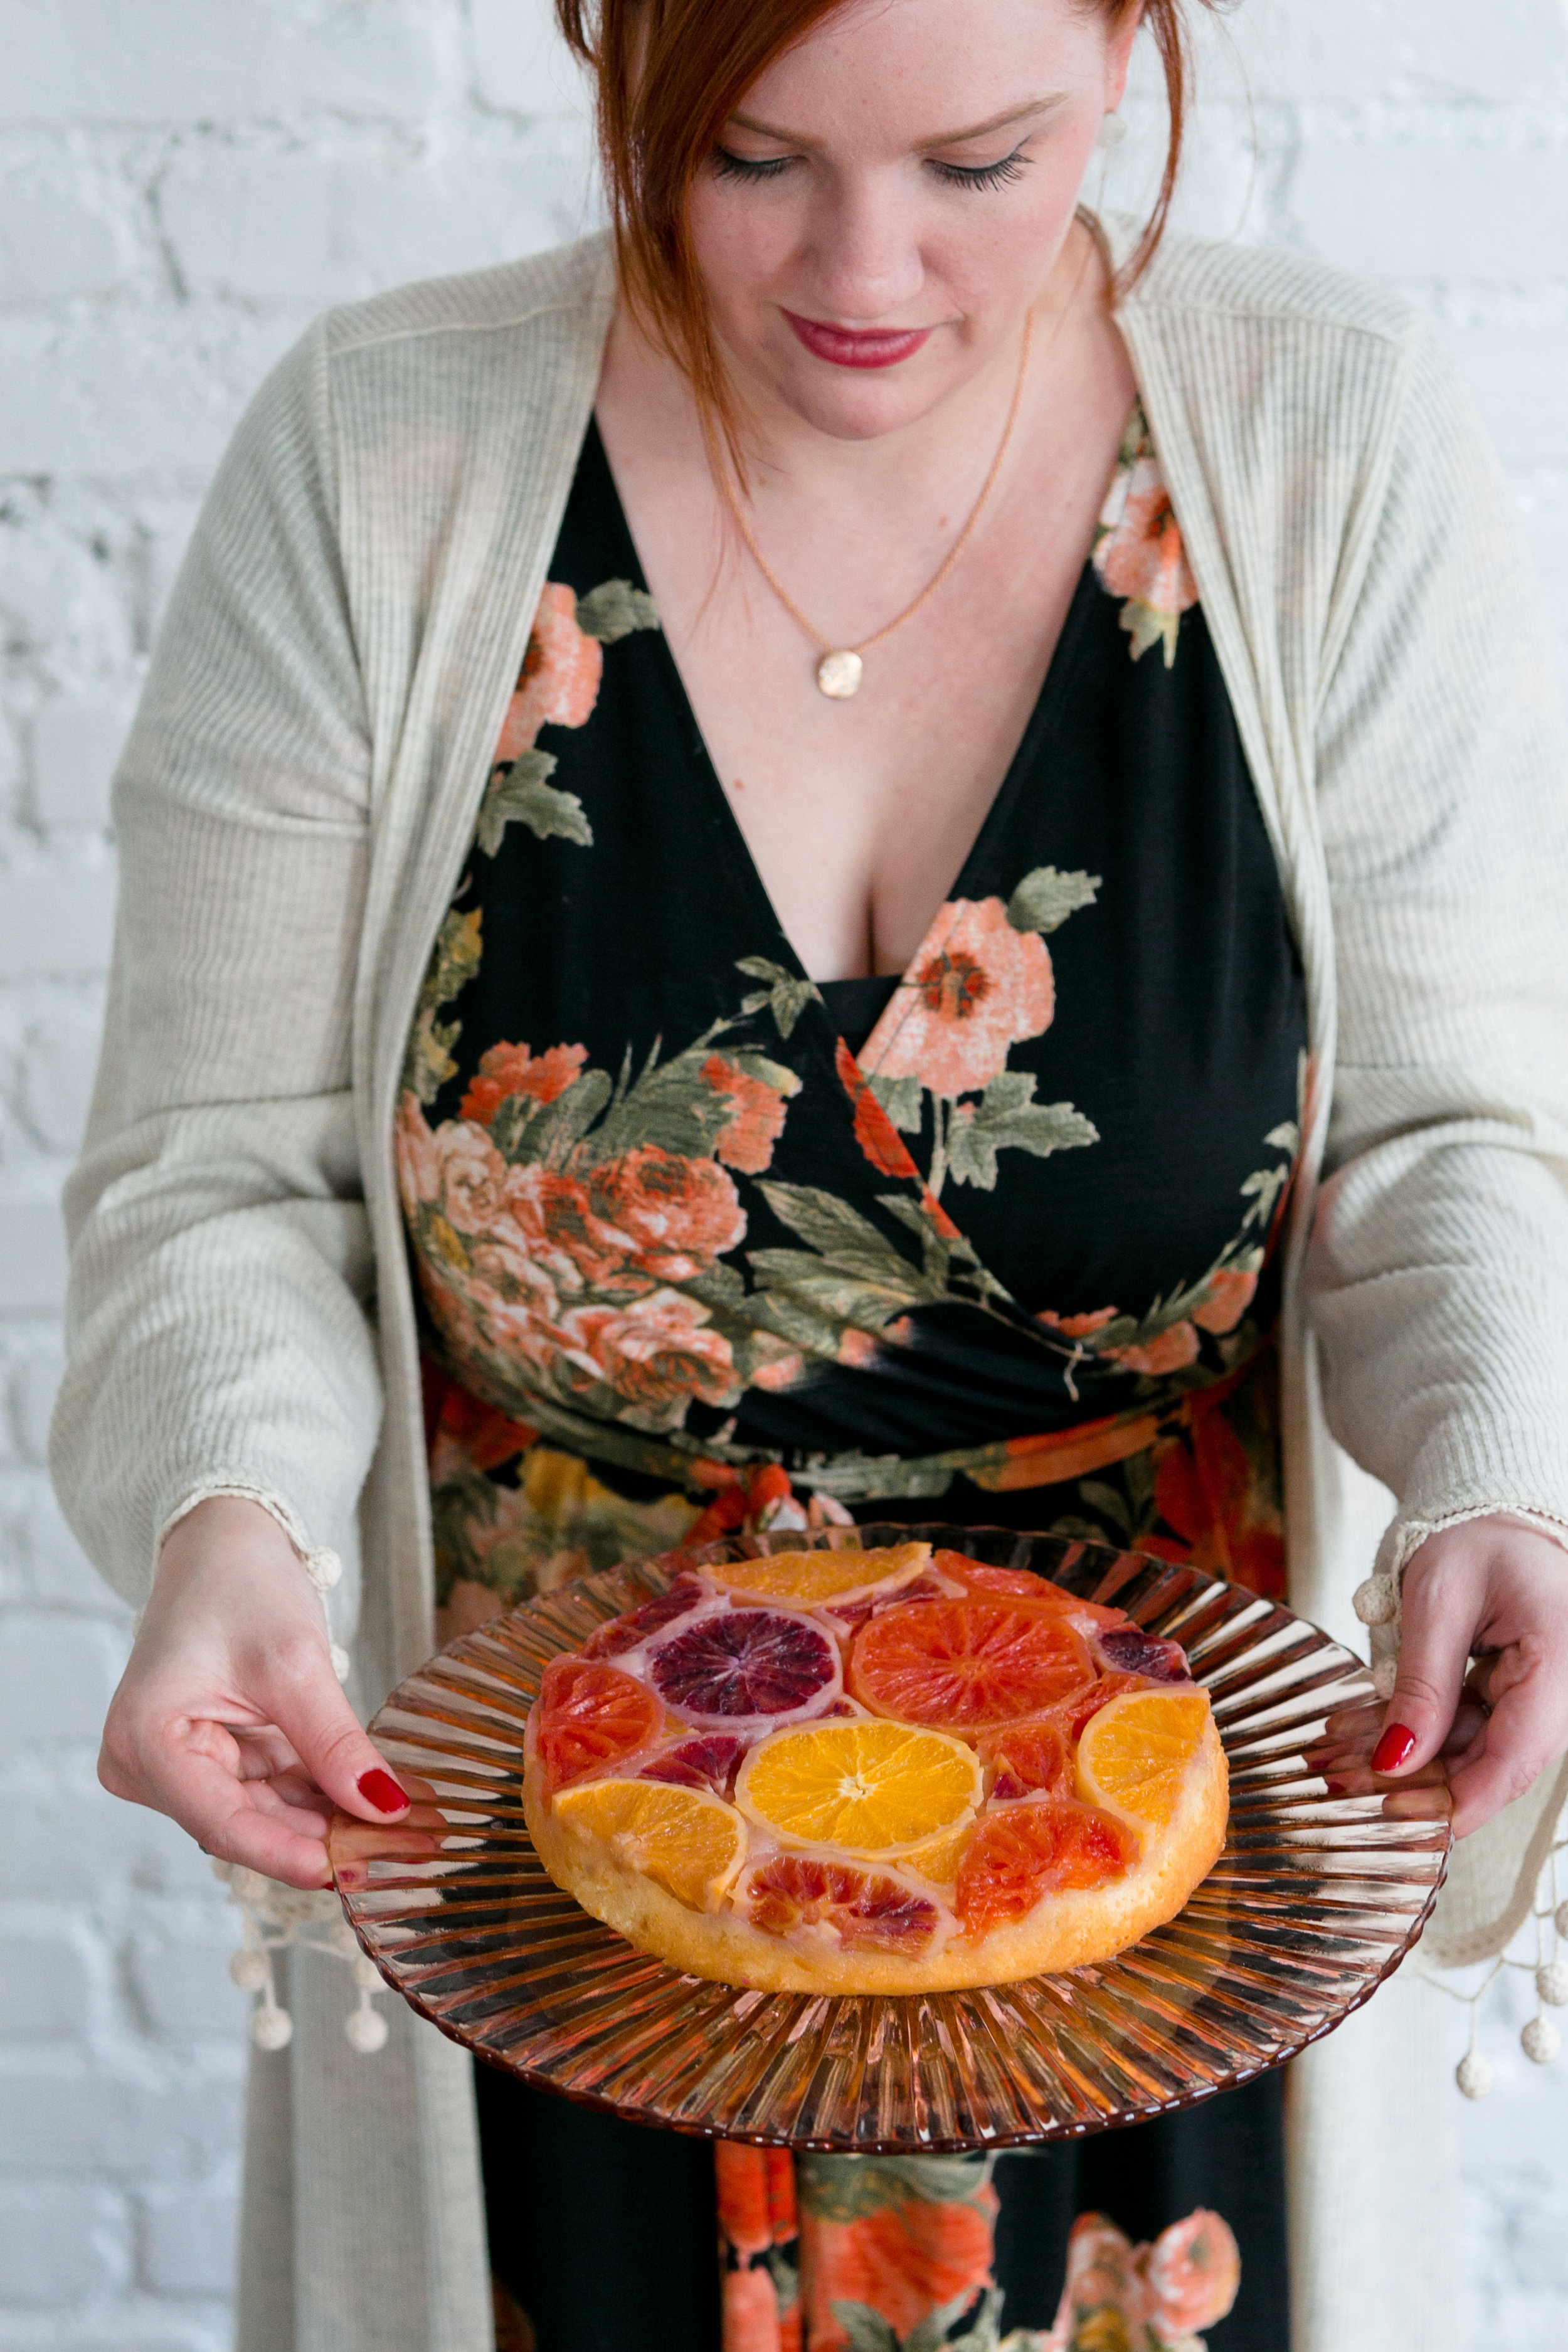 Perfect for Brunch: Citrus Upside Down Cake! Unusuallylovely.com